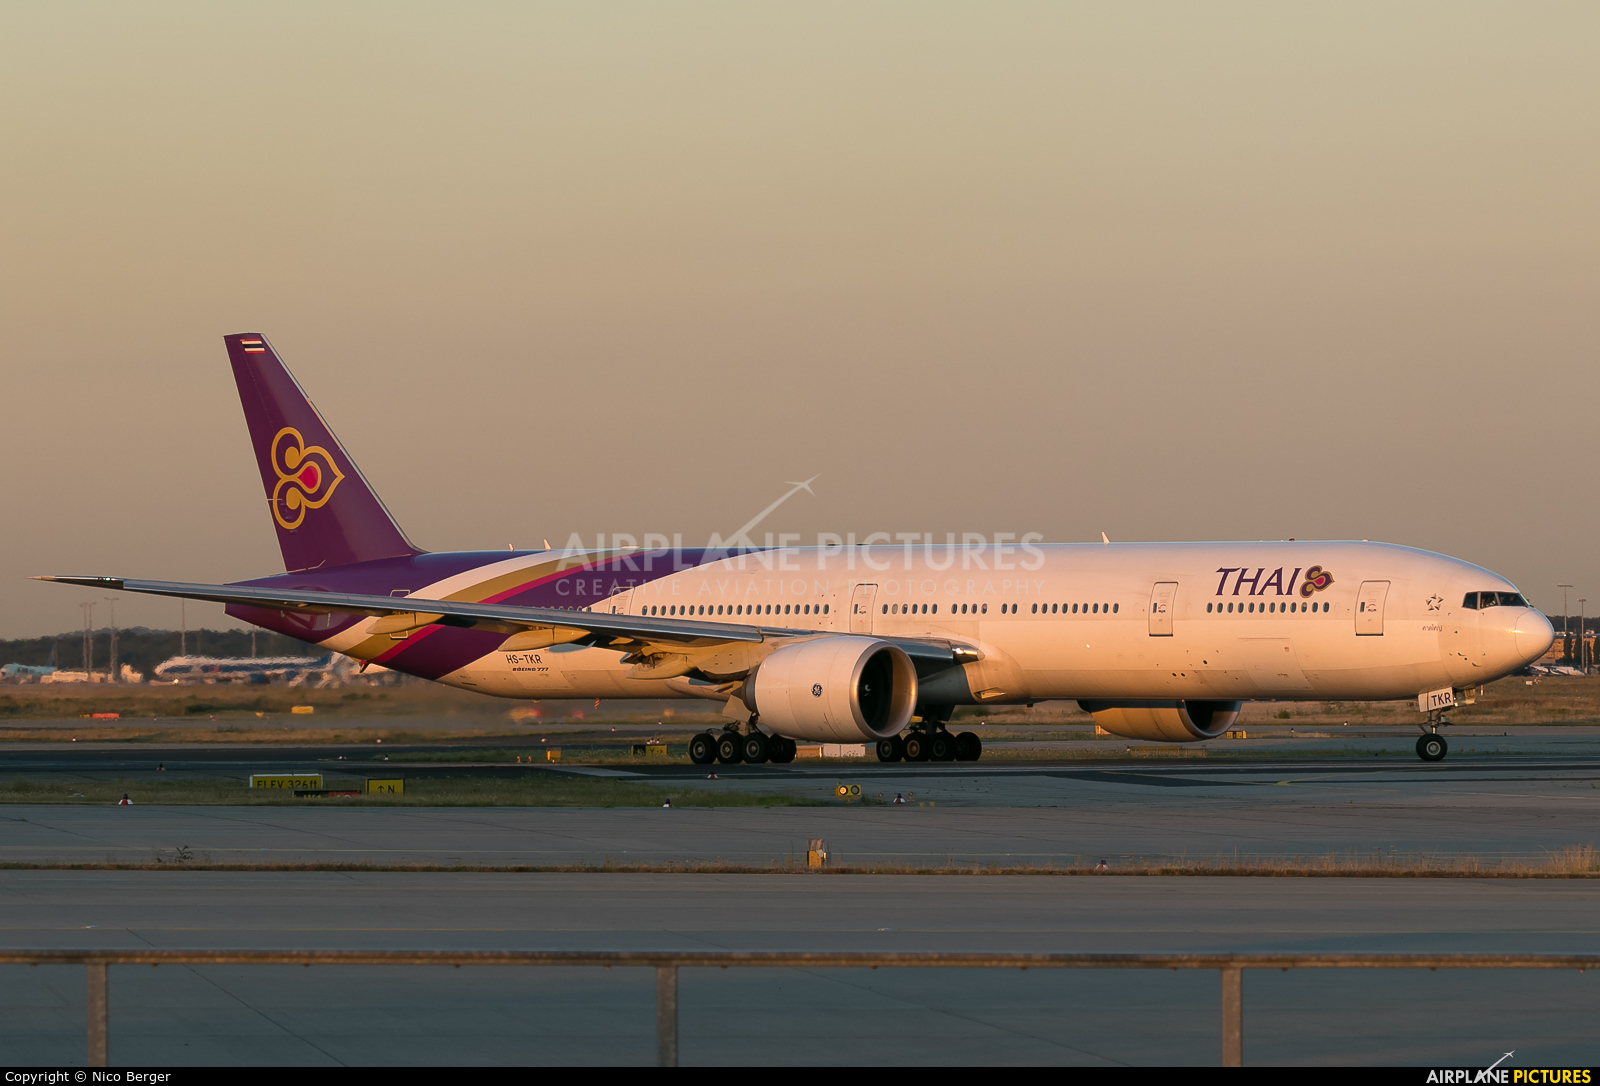 Thai Airways HS-TKR aircraft at Frankfurt